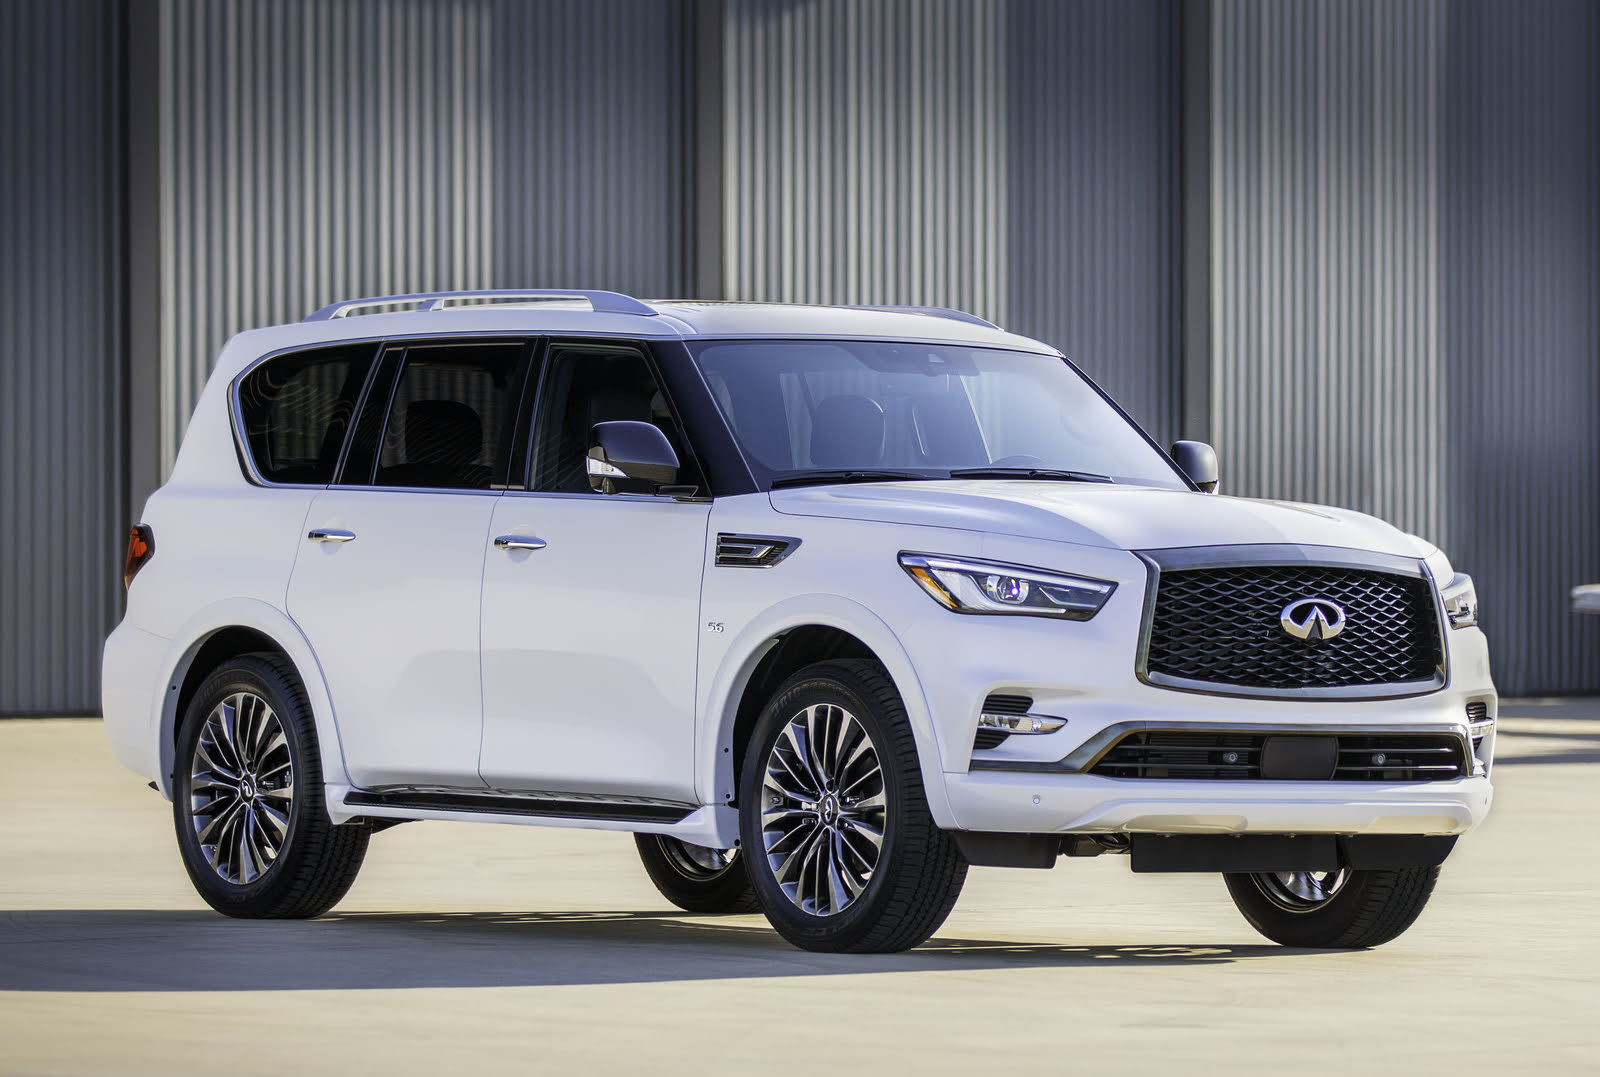 used 2020 infiniti qx80 for sale right now - cargurus